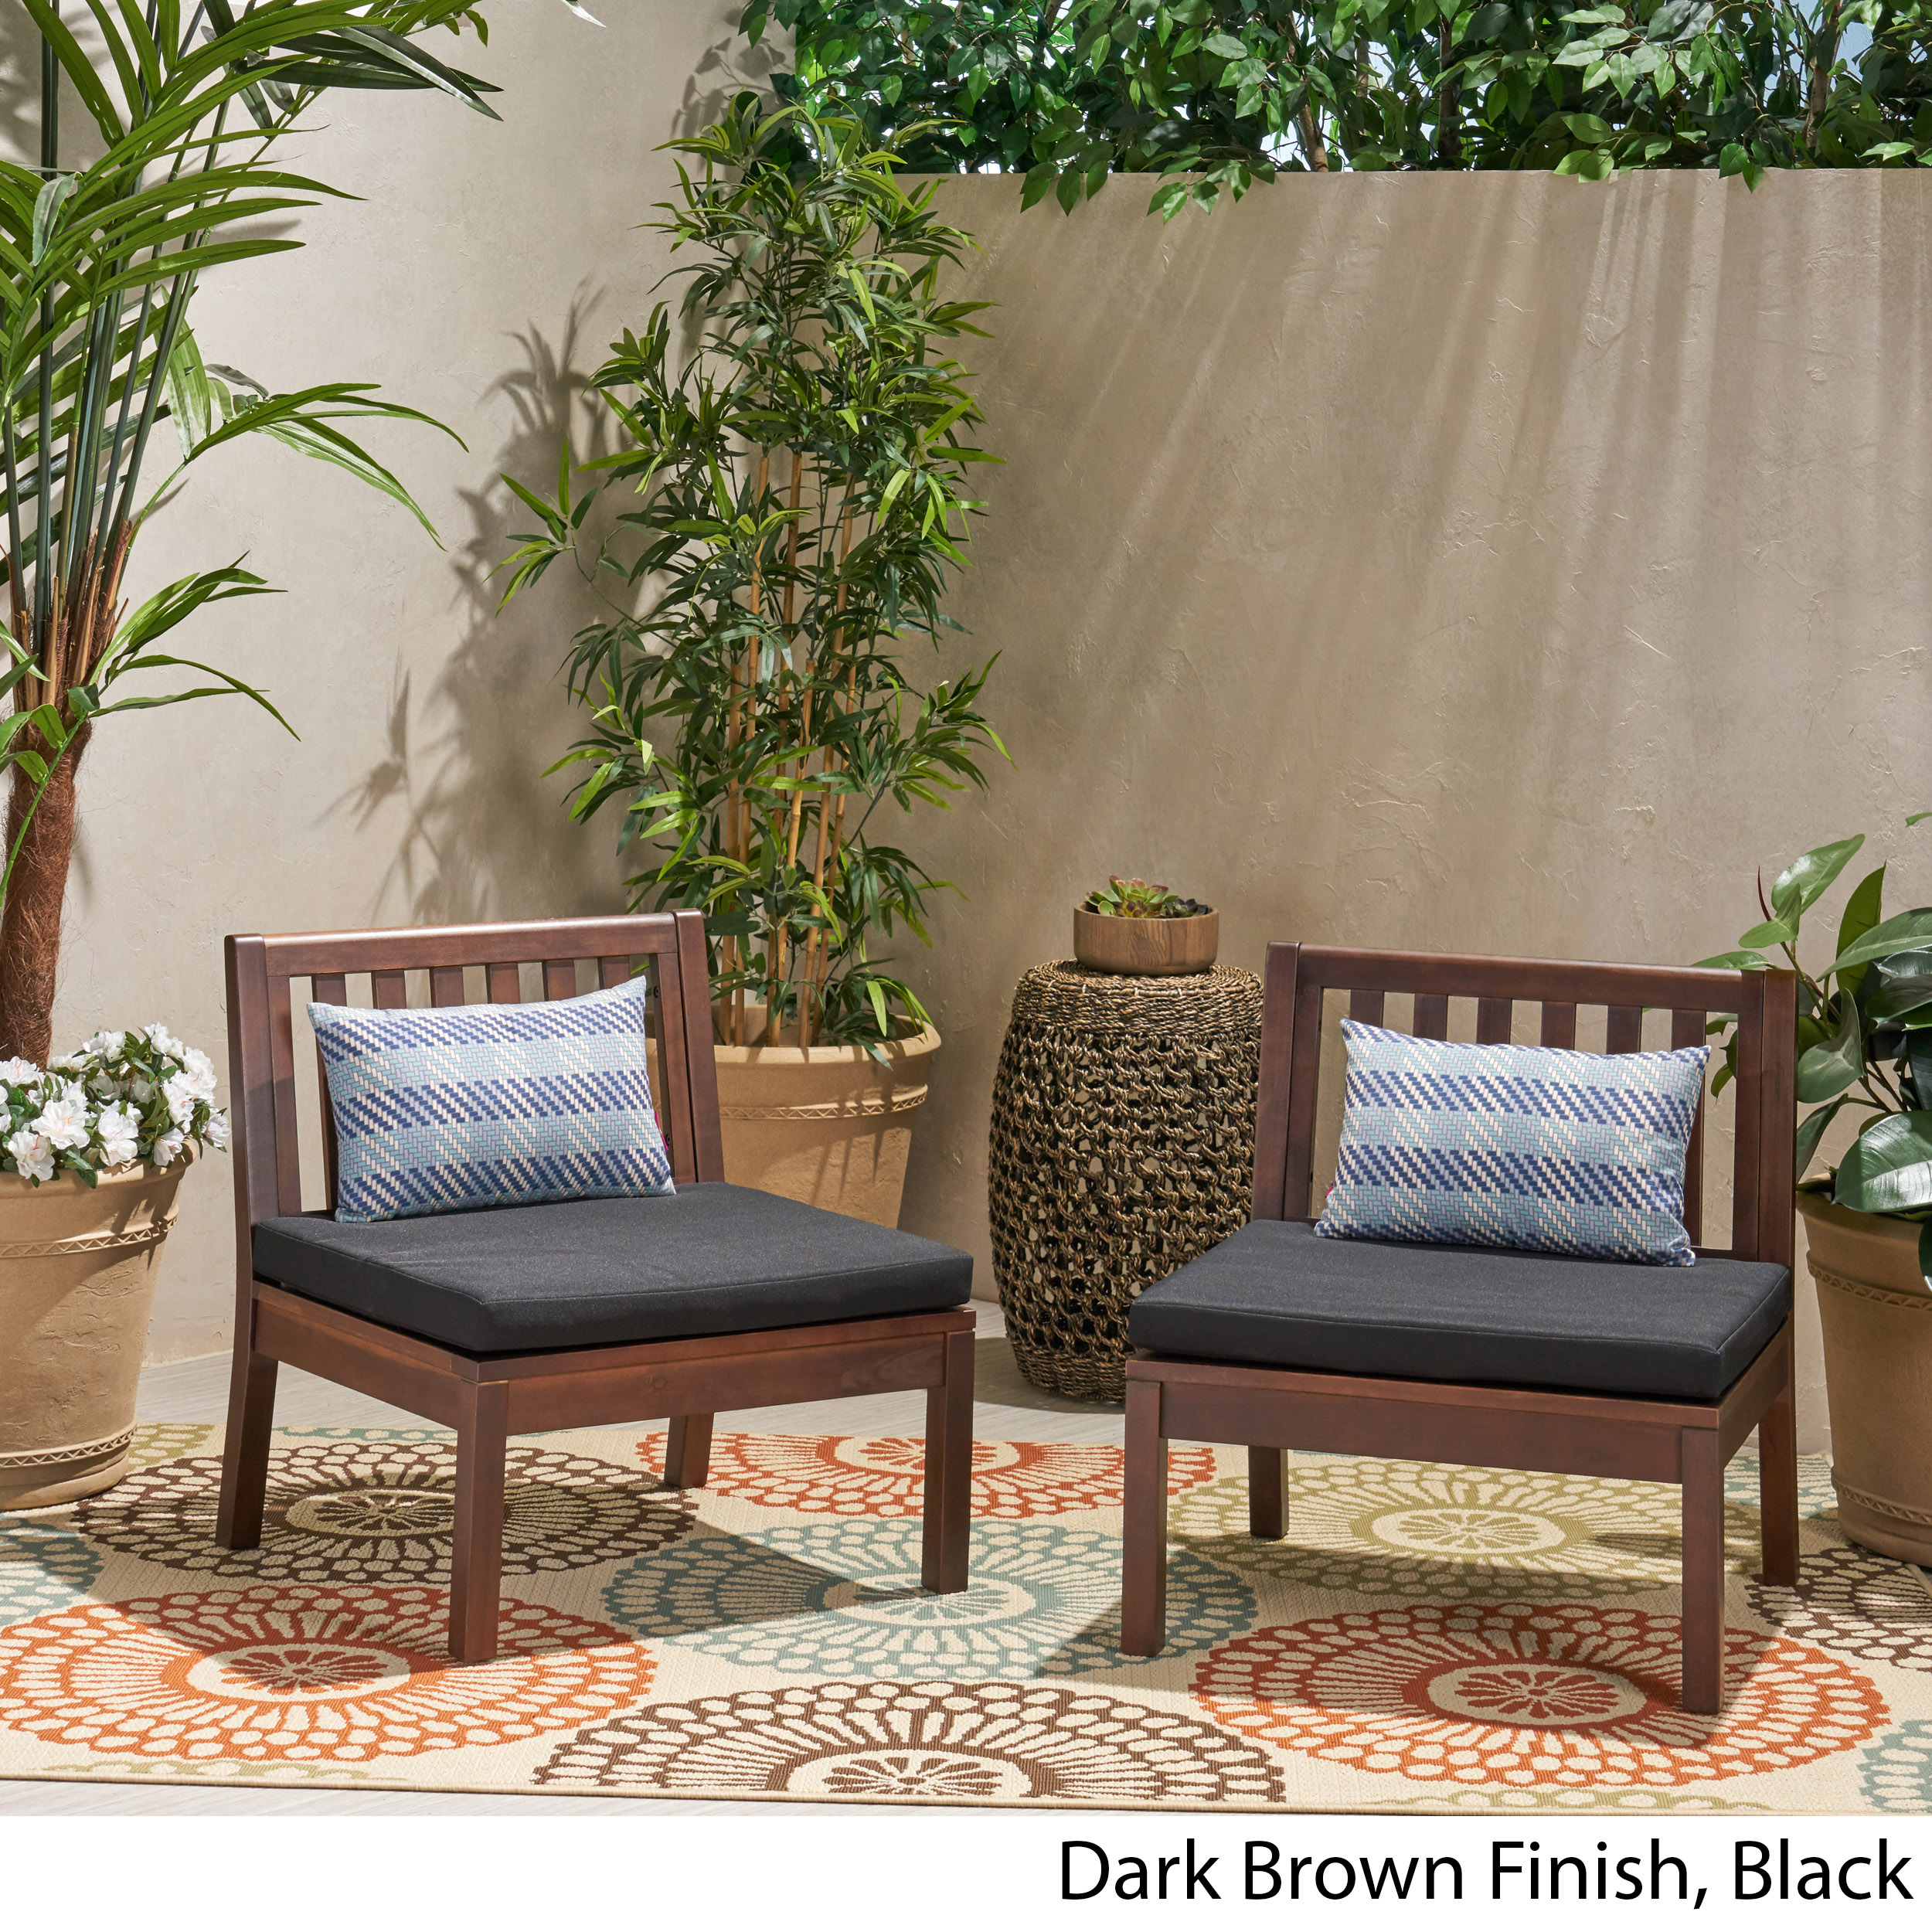 Ikea Askholmen Chair Outdoor Gray Brown Foldable Solid Acacia Wood Set Of 2 For Sale Online Ebay